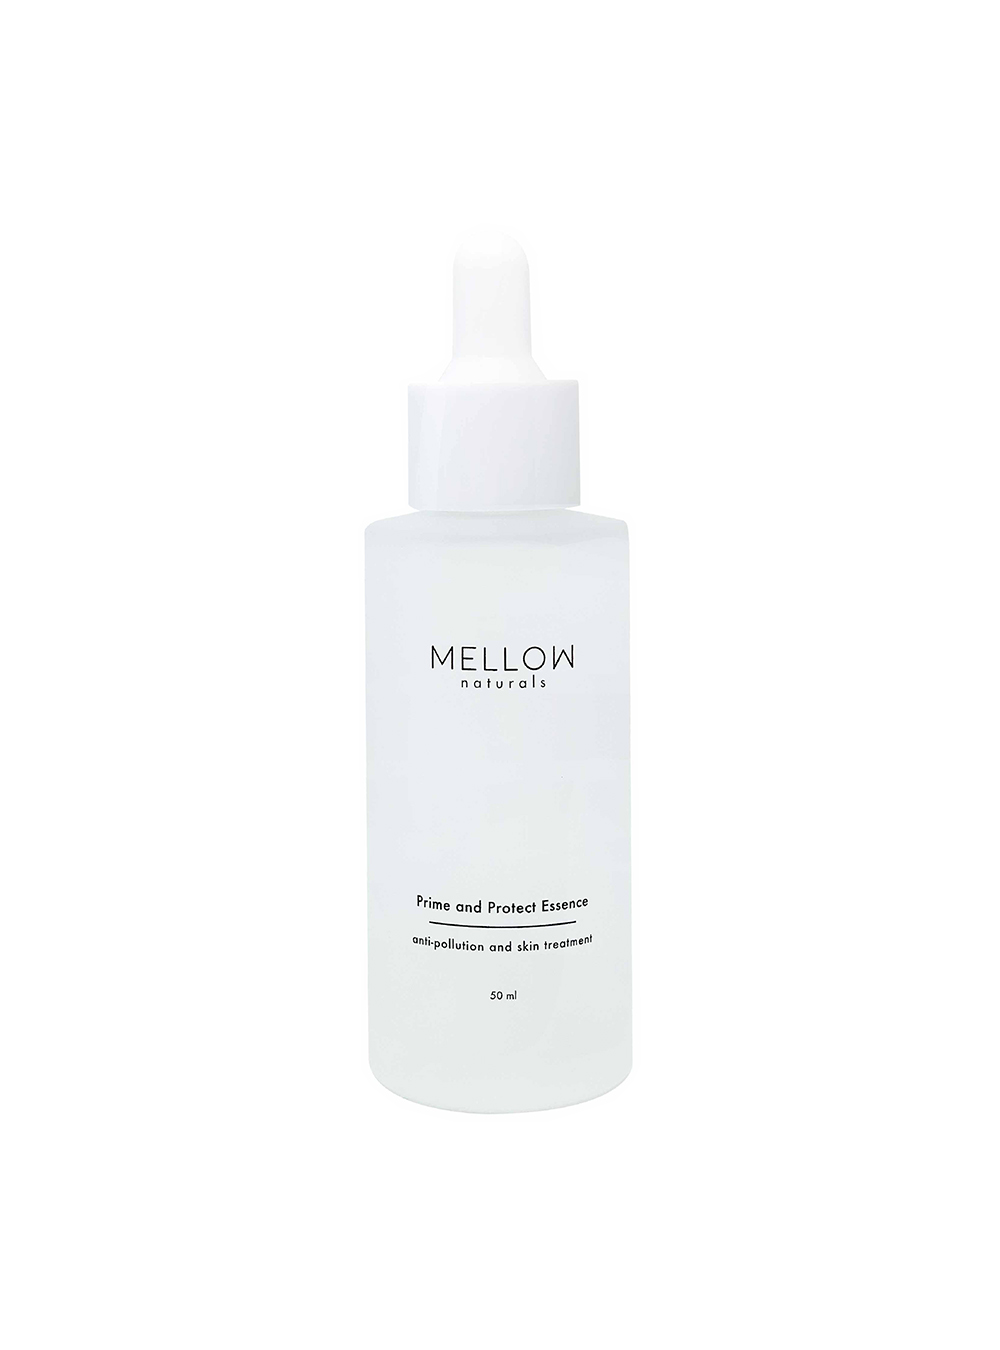 Mellow Naturals Prime And Protect Essence, $62